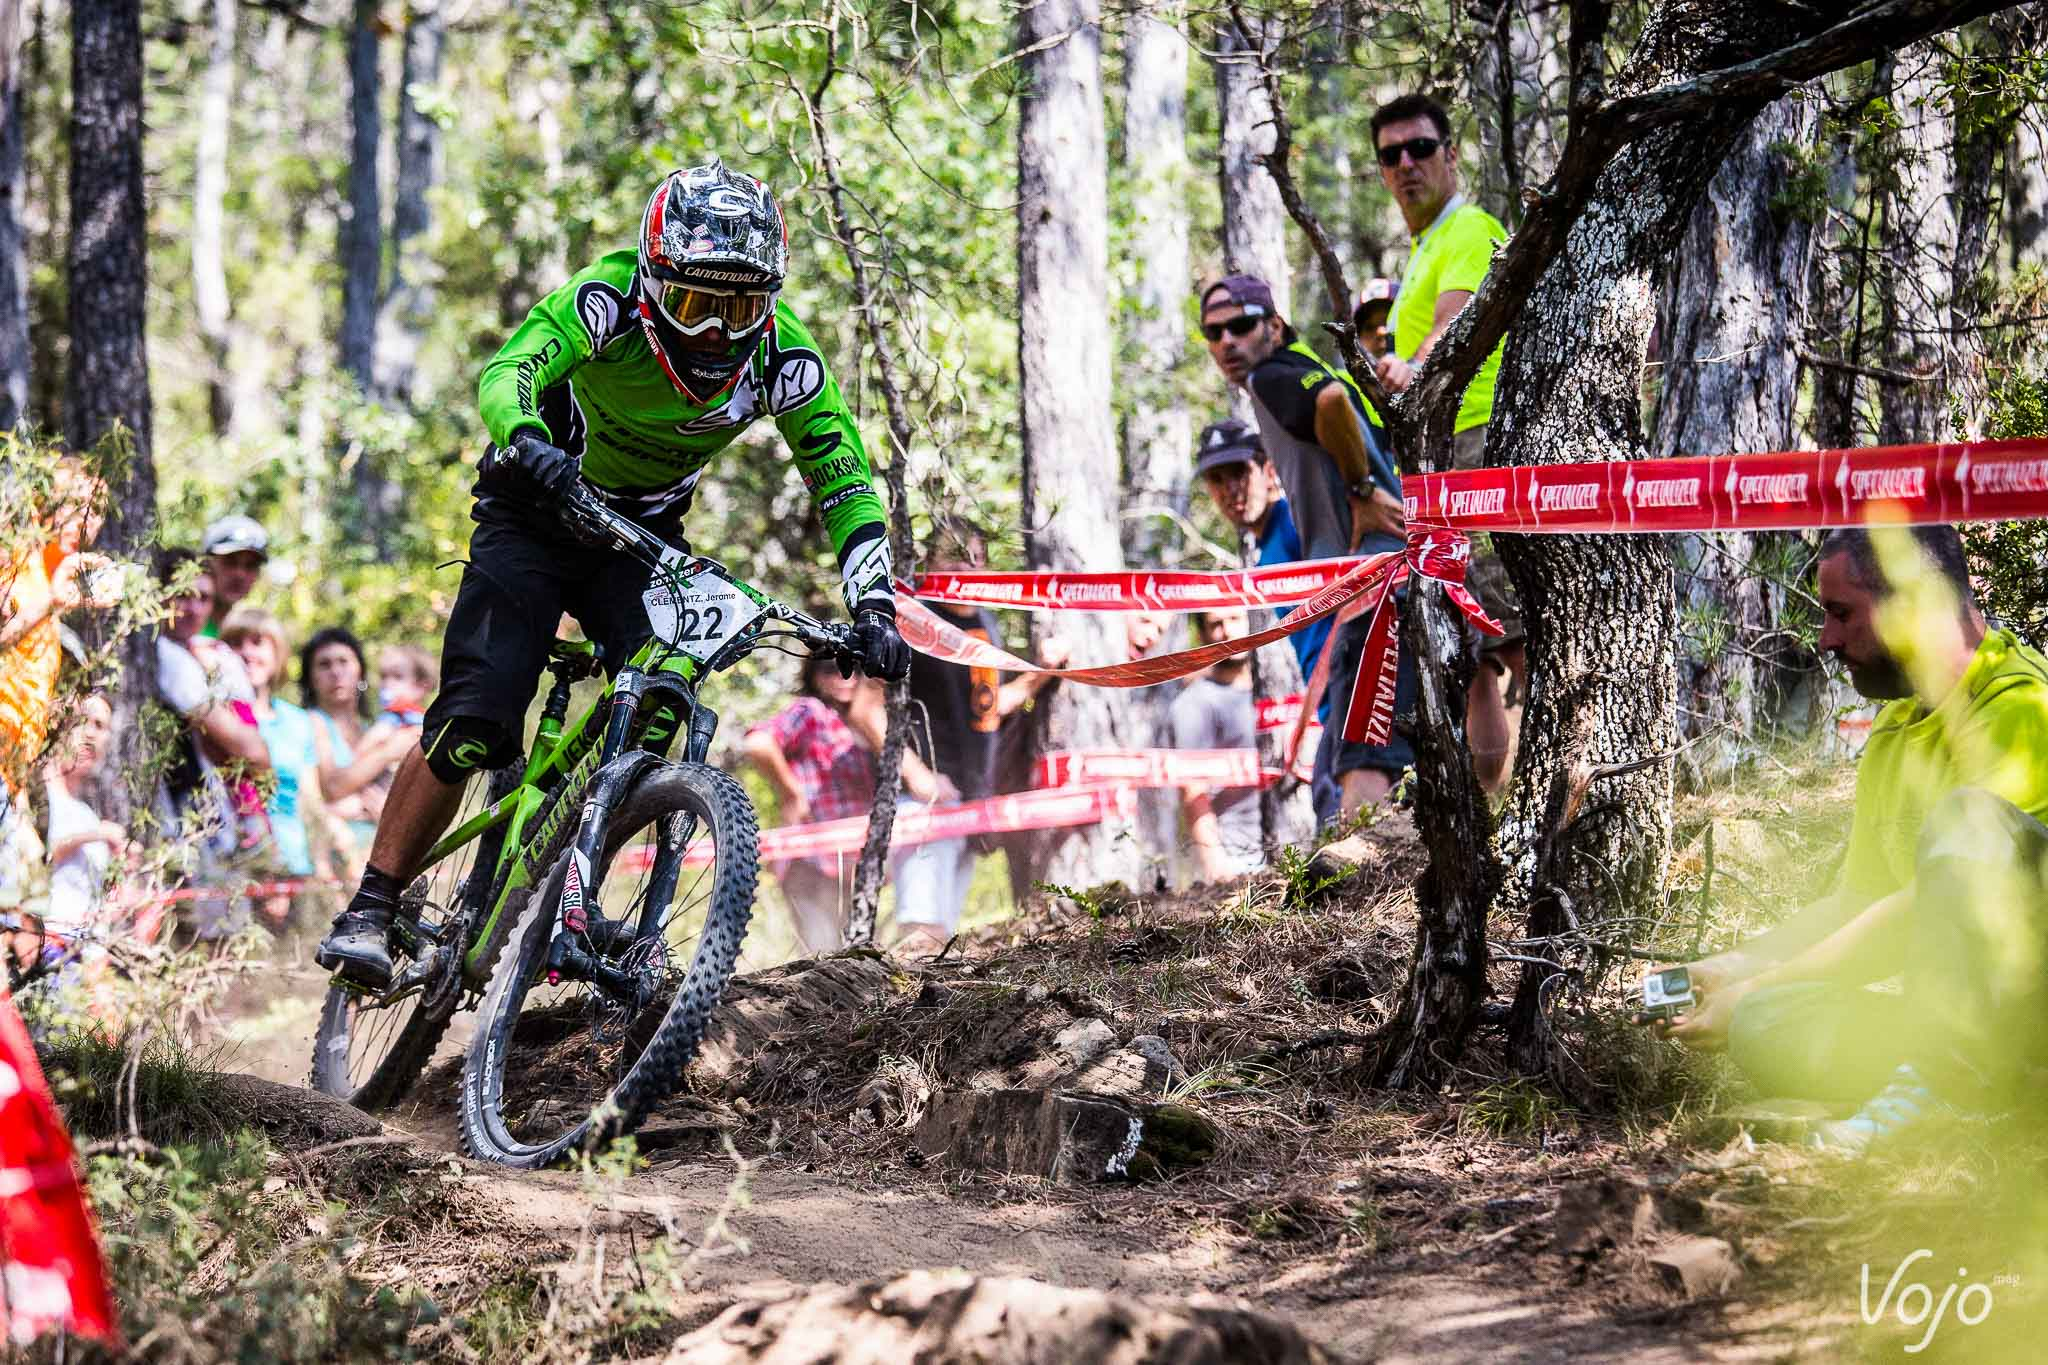 Enduro_World_Series_7_Spain_Ainsa_Zona_Zero_2015_Copyright_VojoMag-21